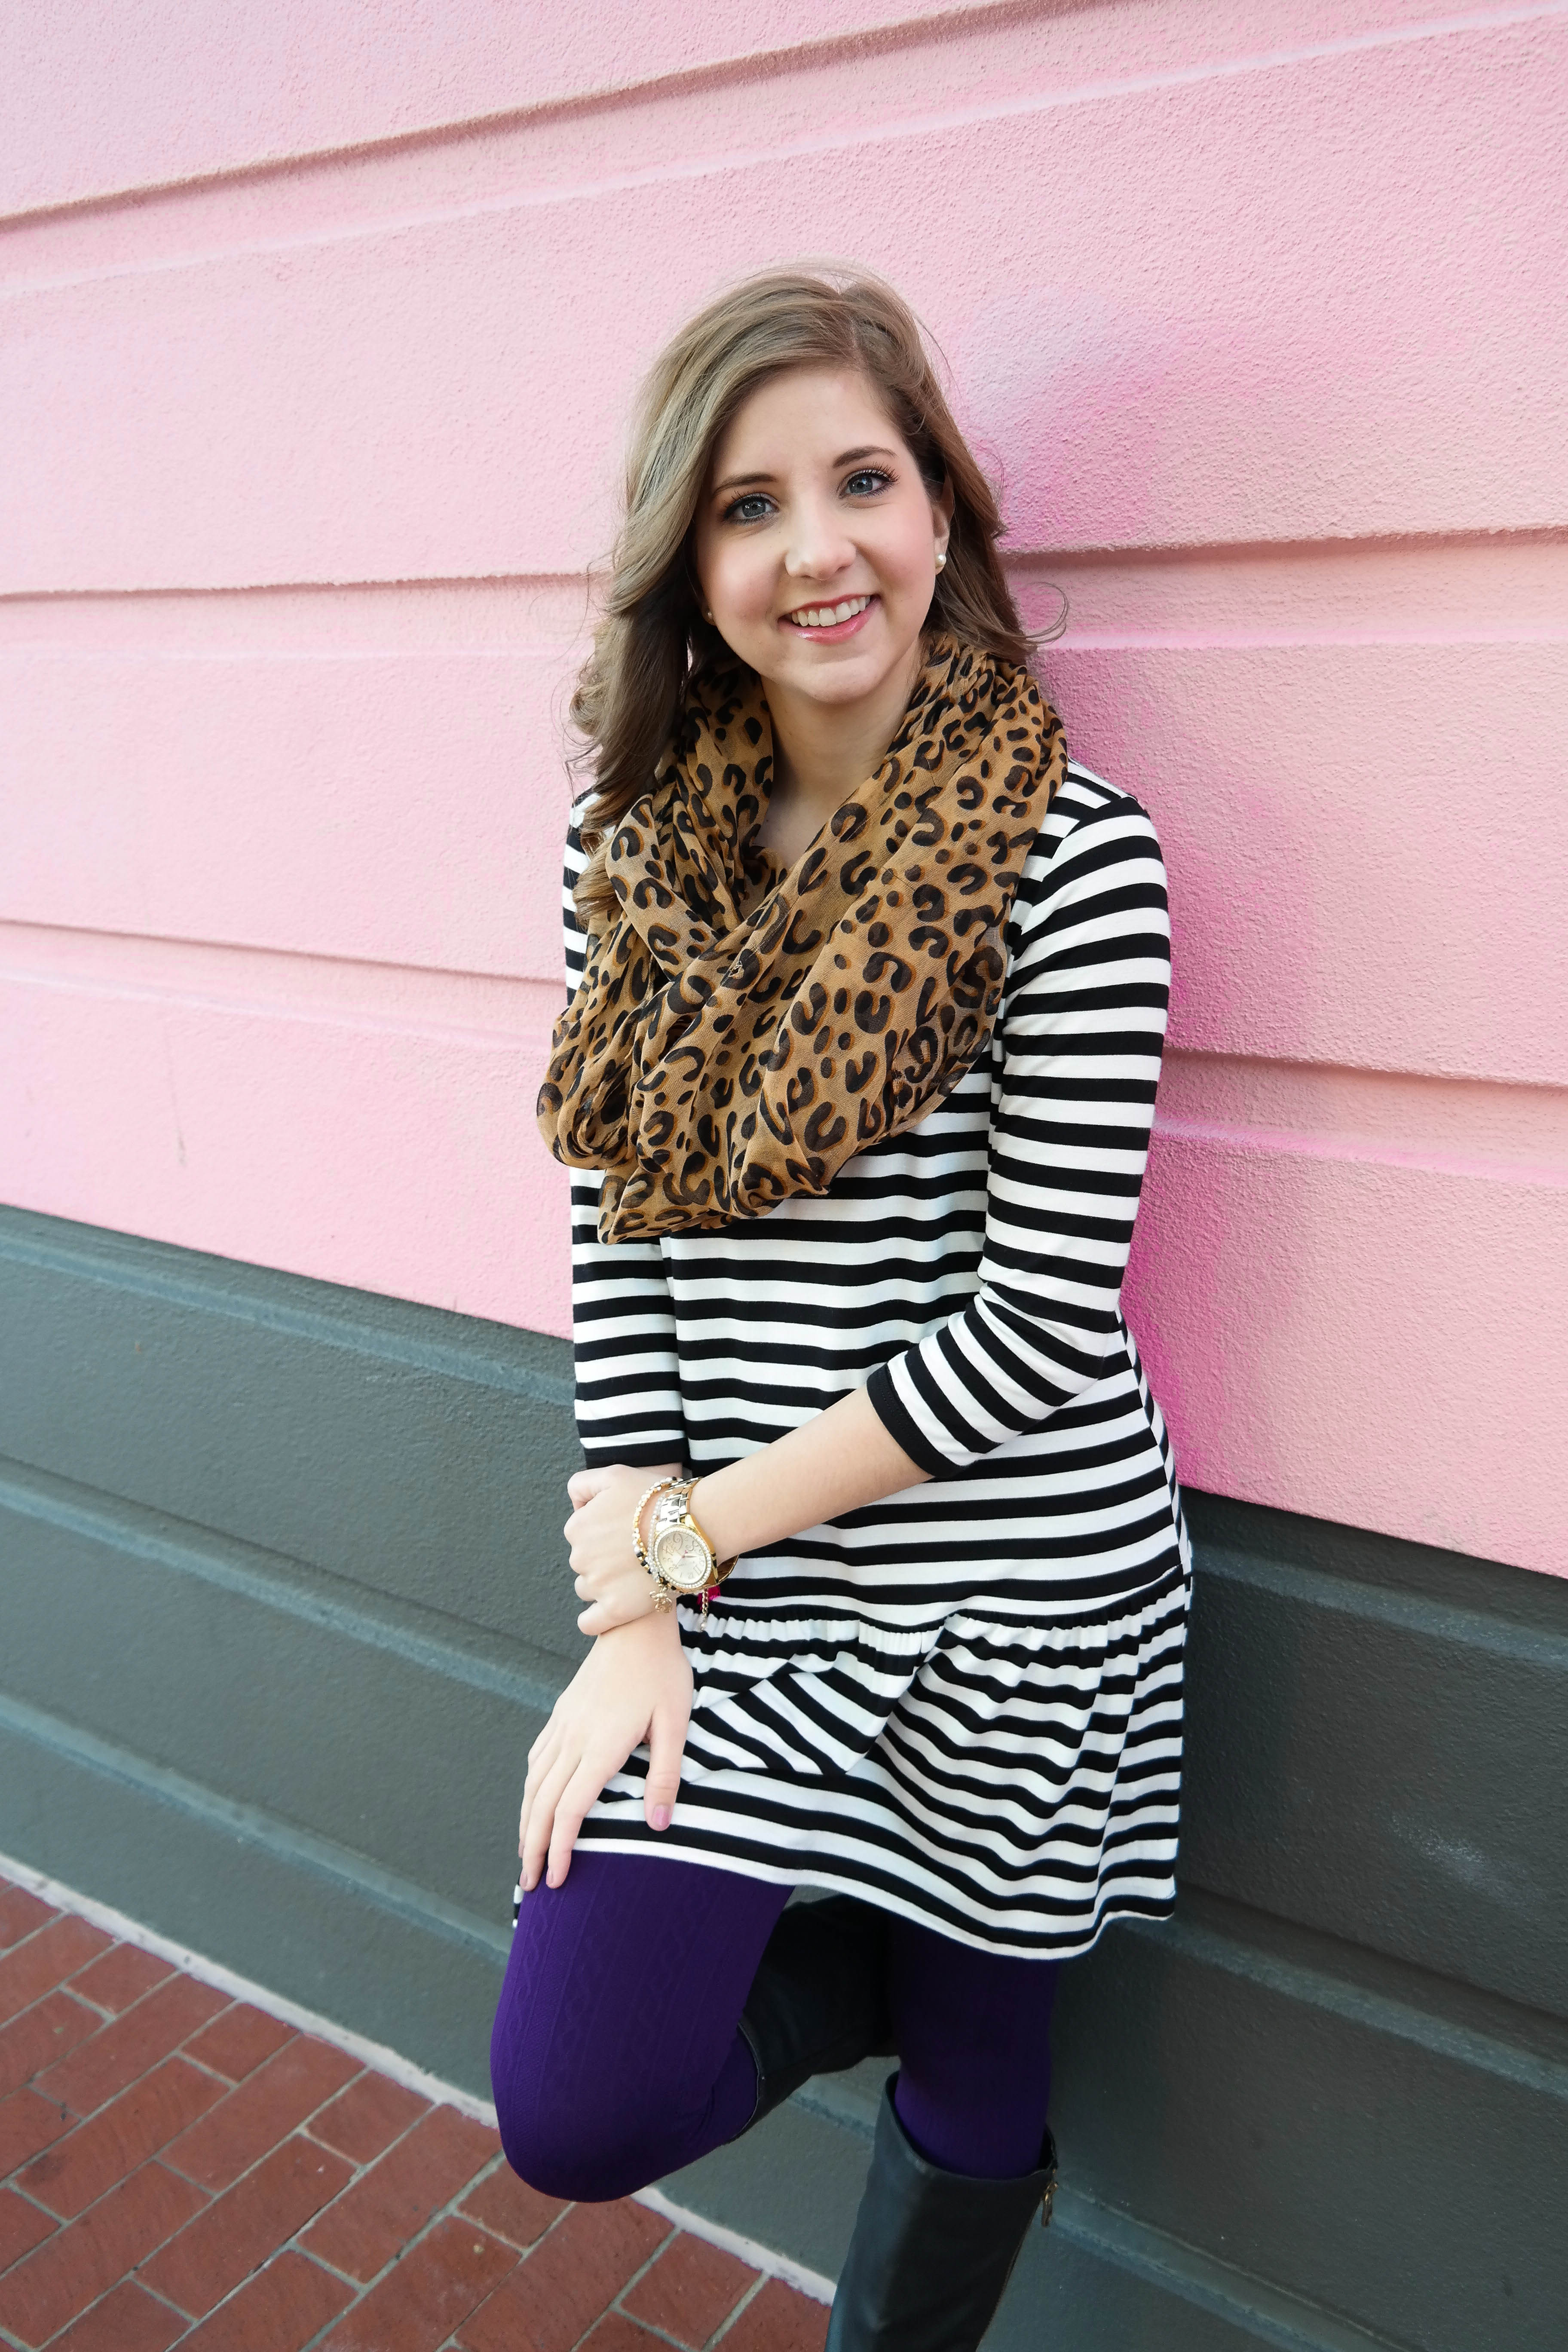 How To Mix Cheetah Print and Stripes